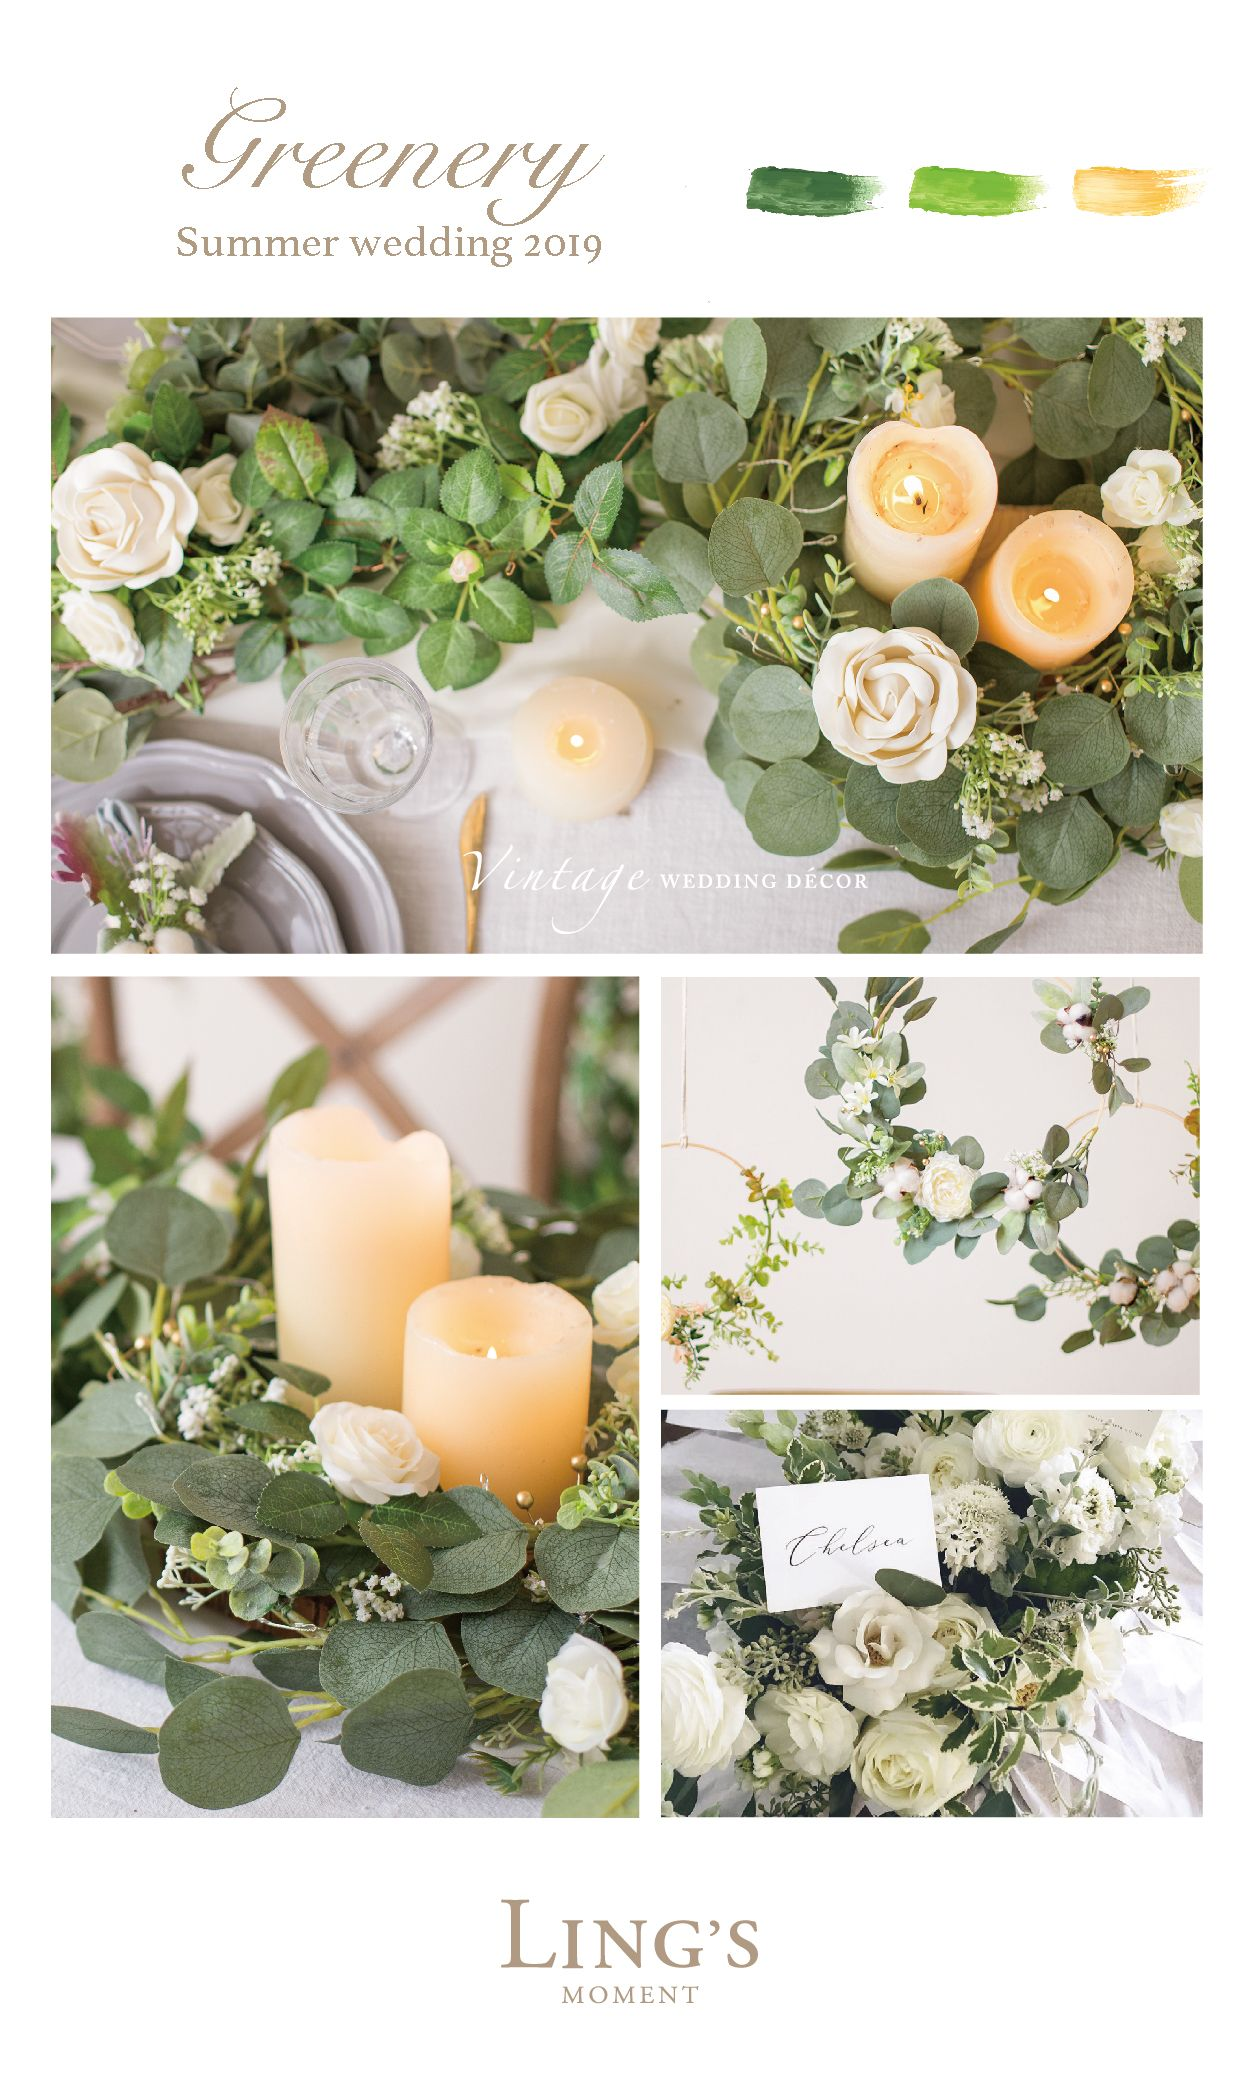 greenery for wedding, home decor! 50 types leaves 30% off, code